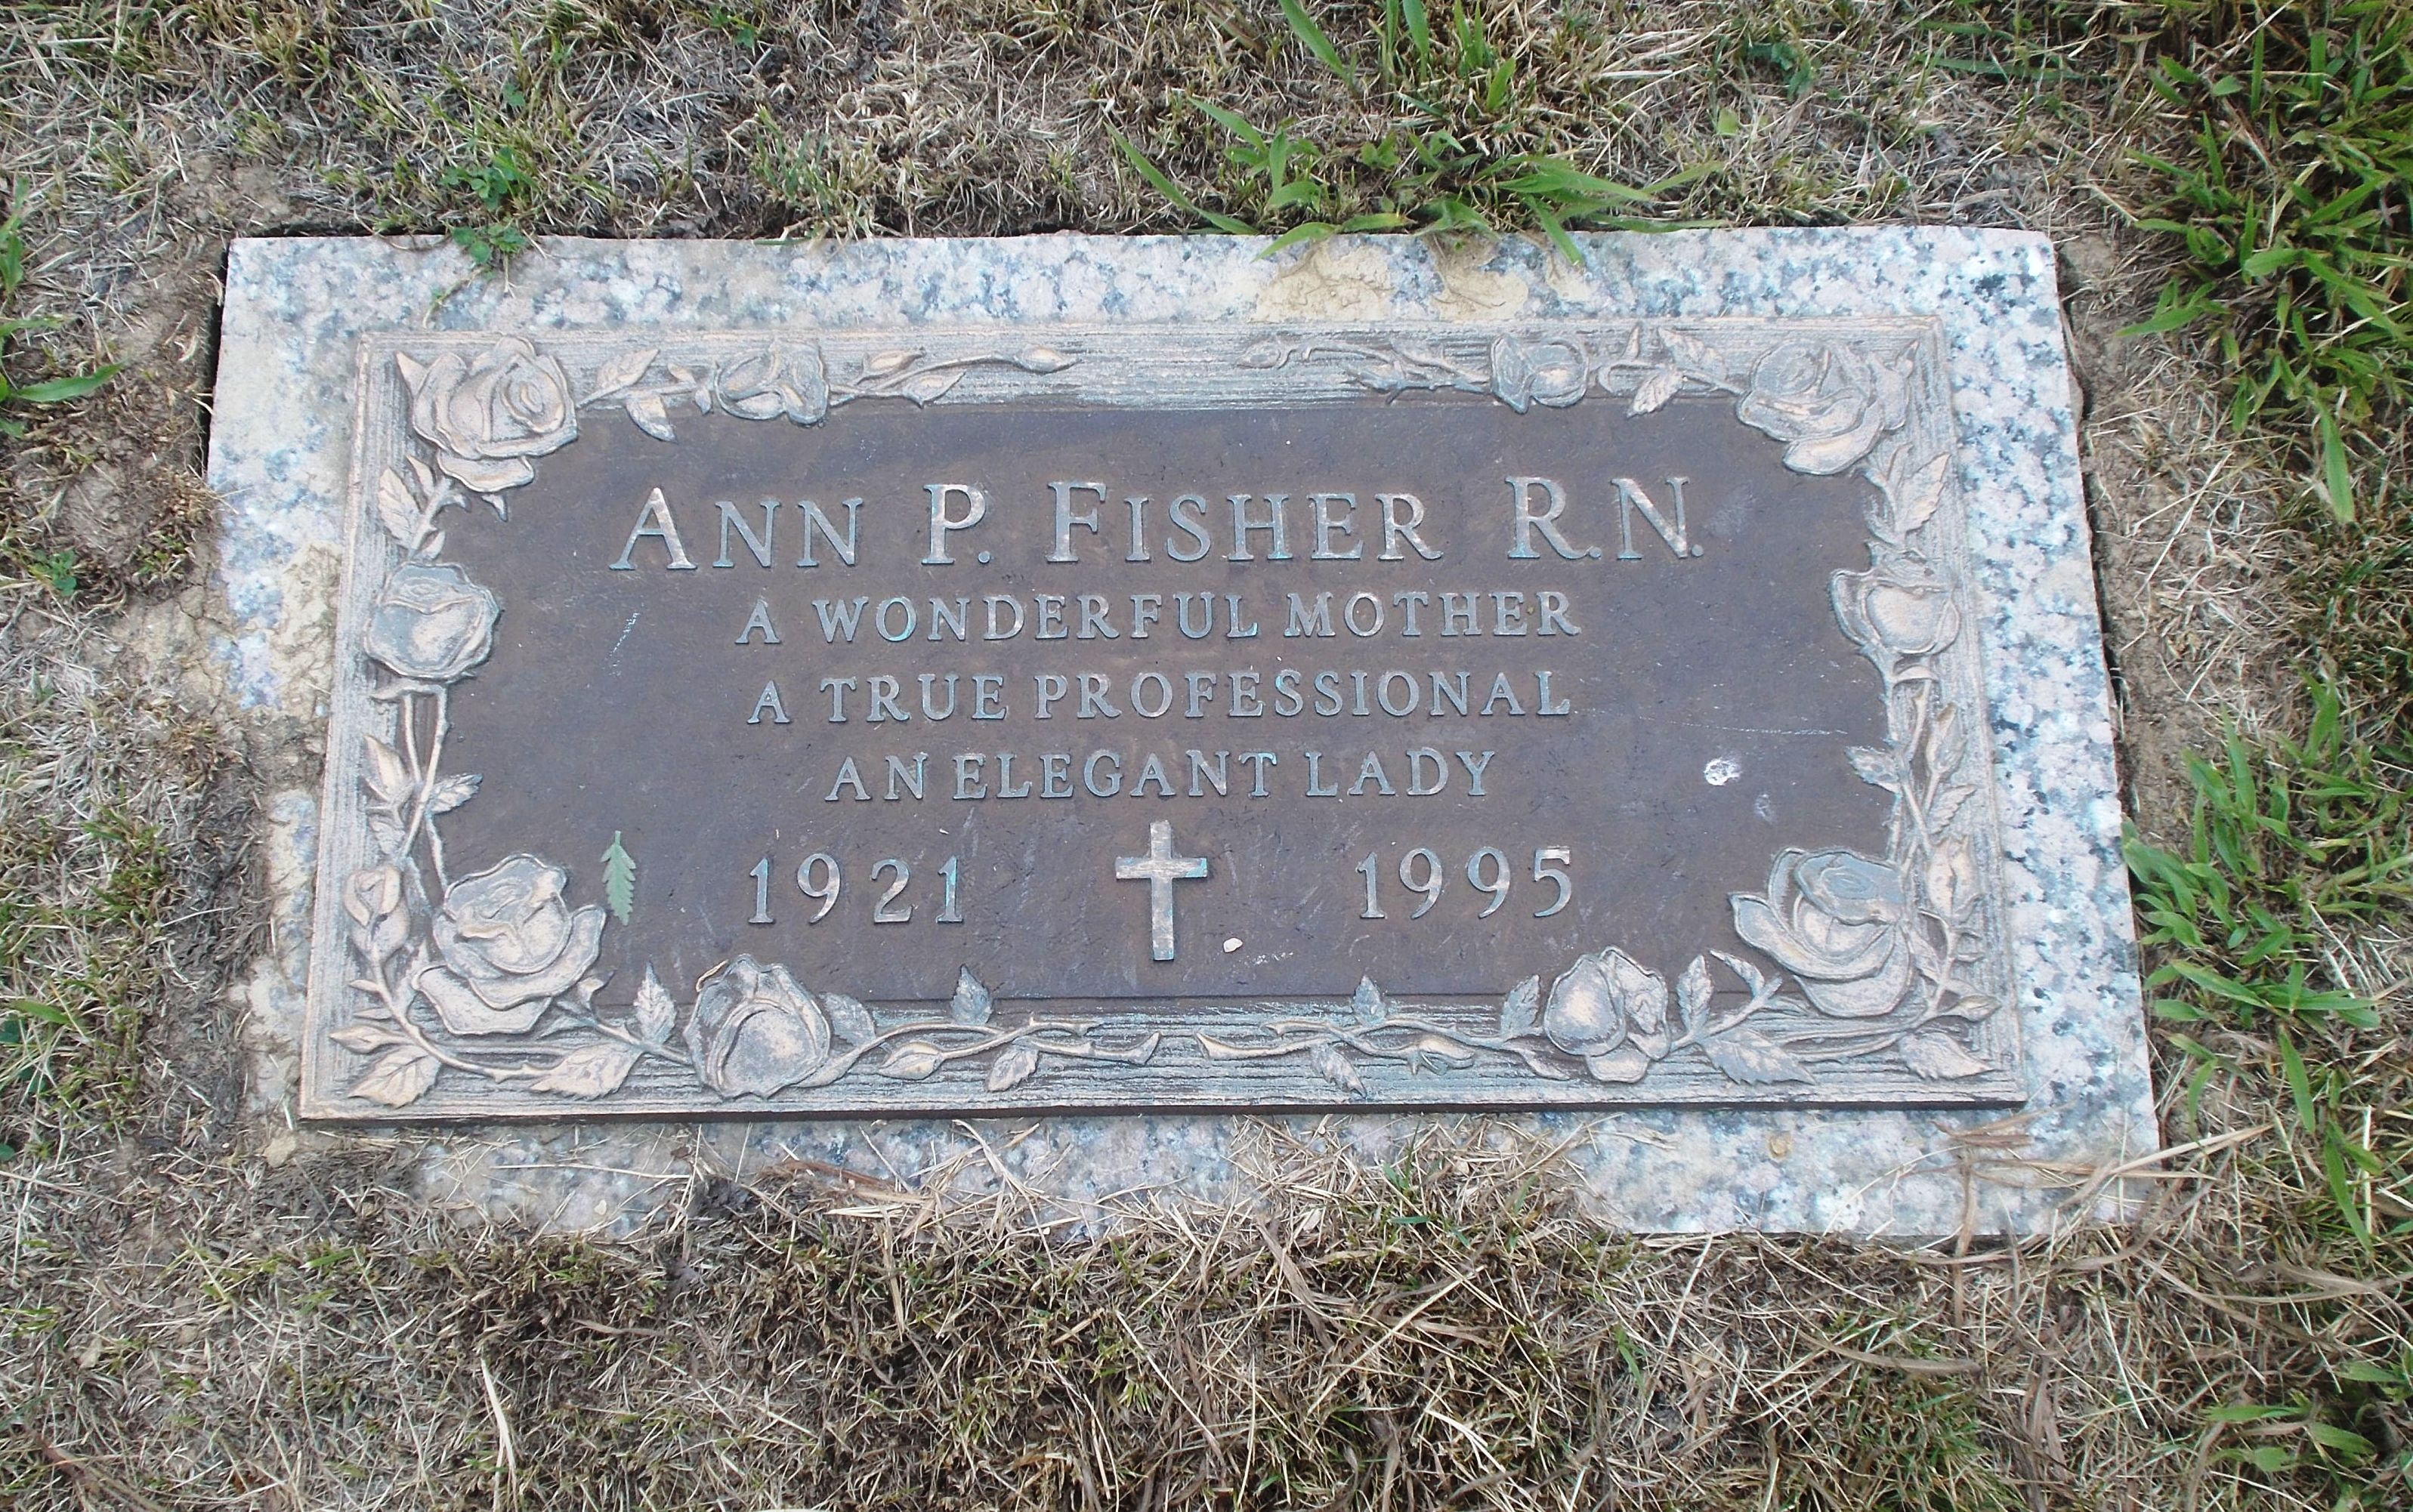 Ann P Fisher